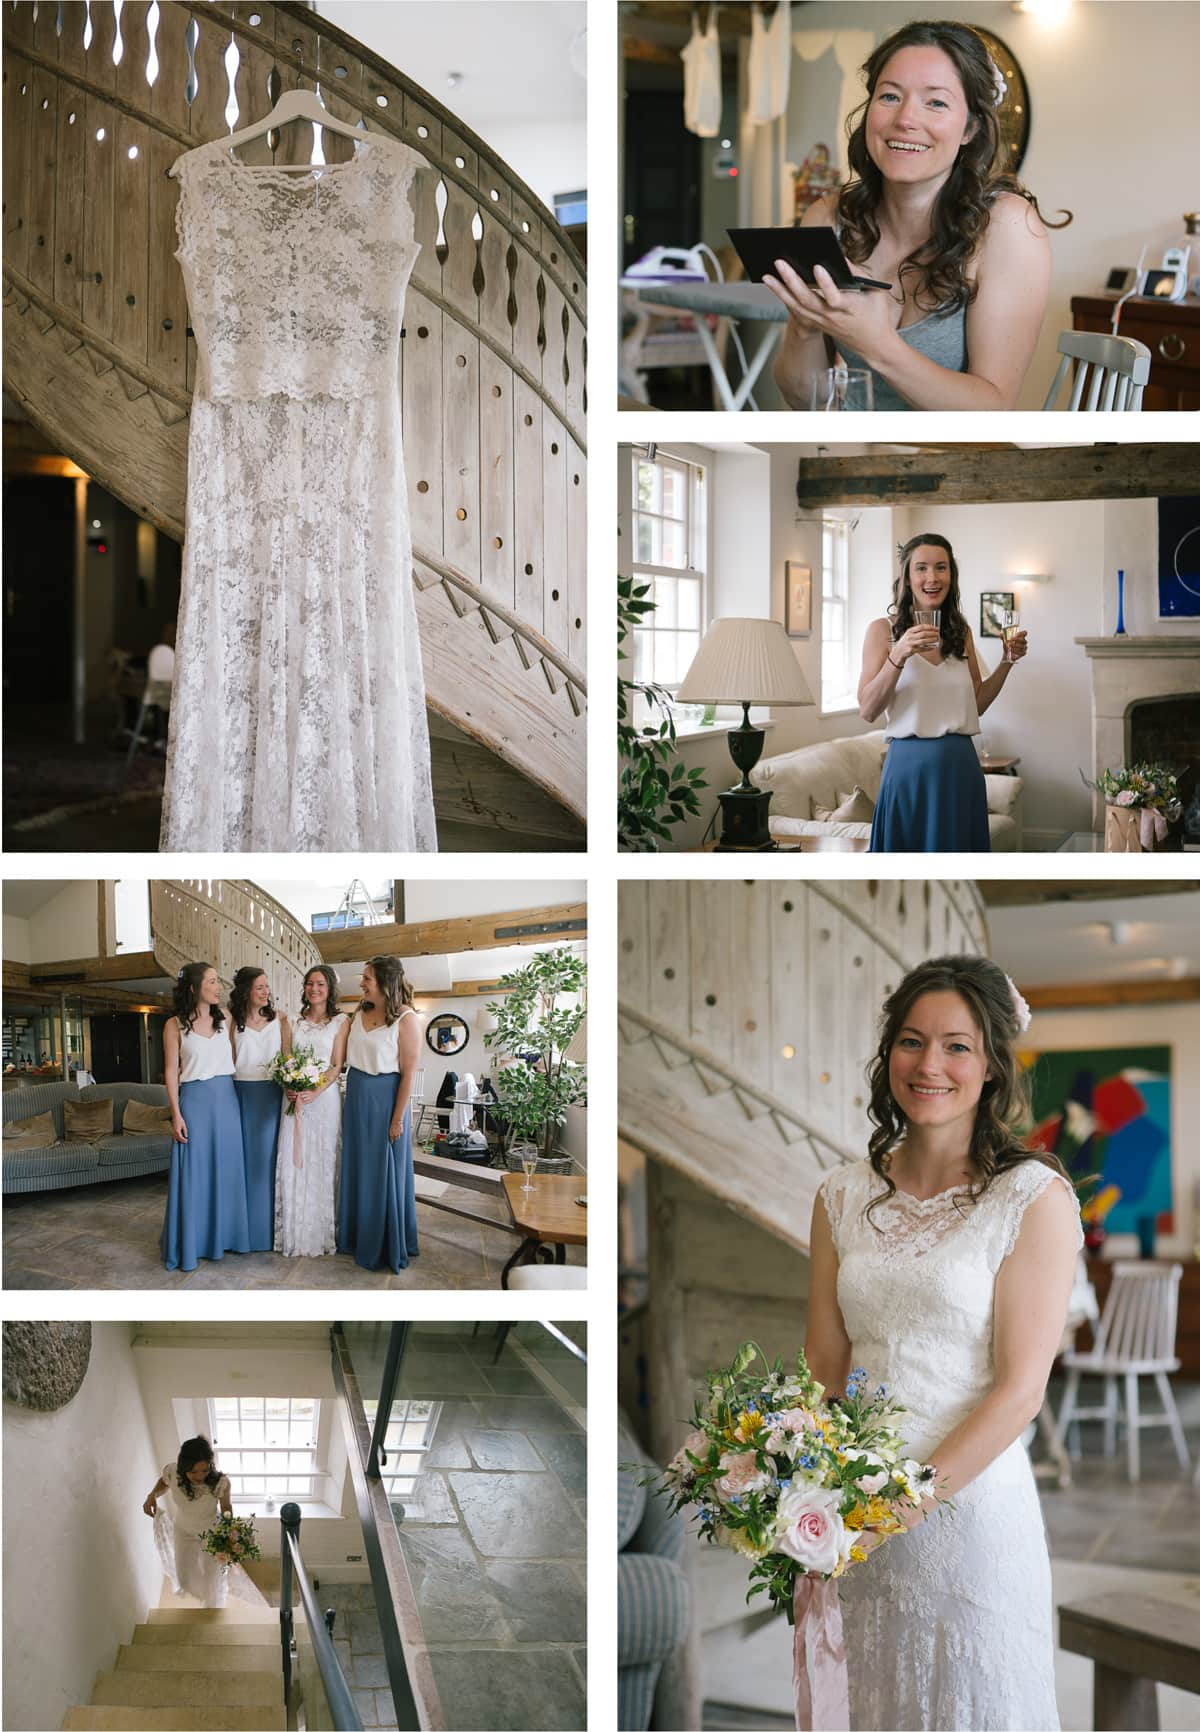 Collage of images of bride getting ready with bridesmaids. She wears a Charlie Brear dress, and bridesmaids are in white and blue separates.